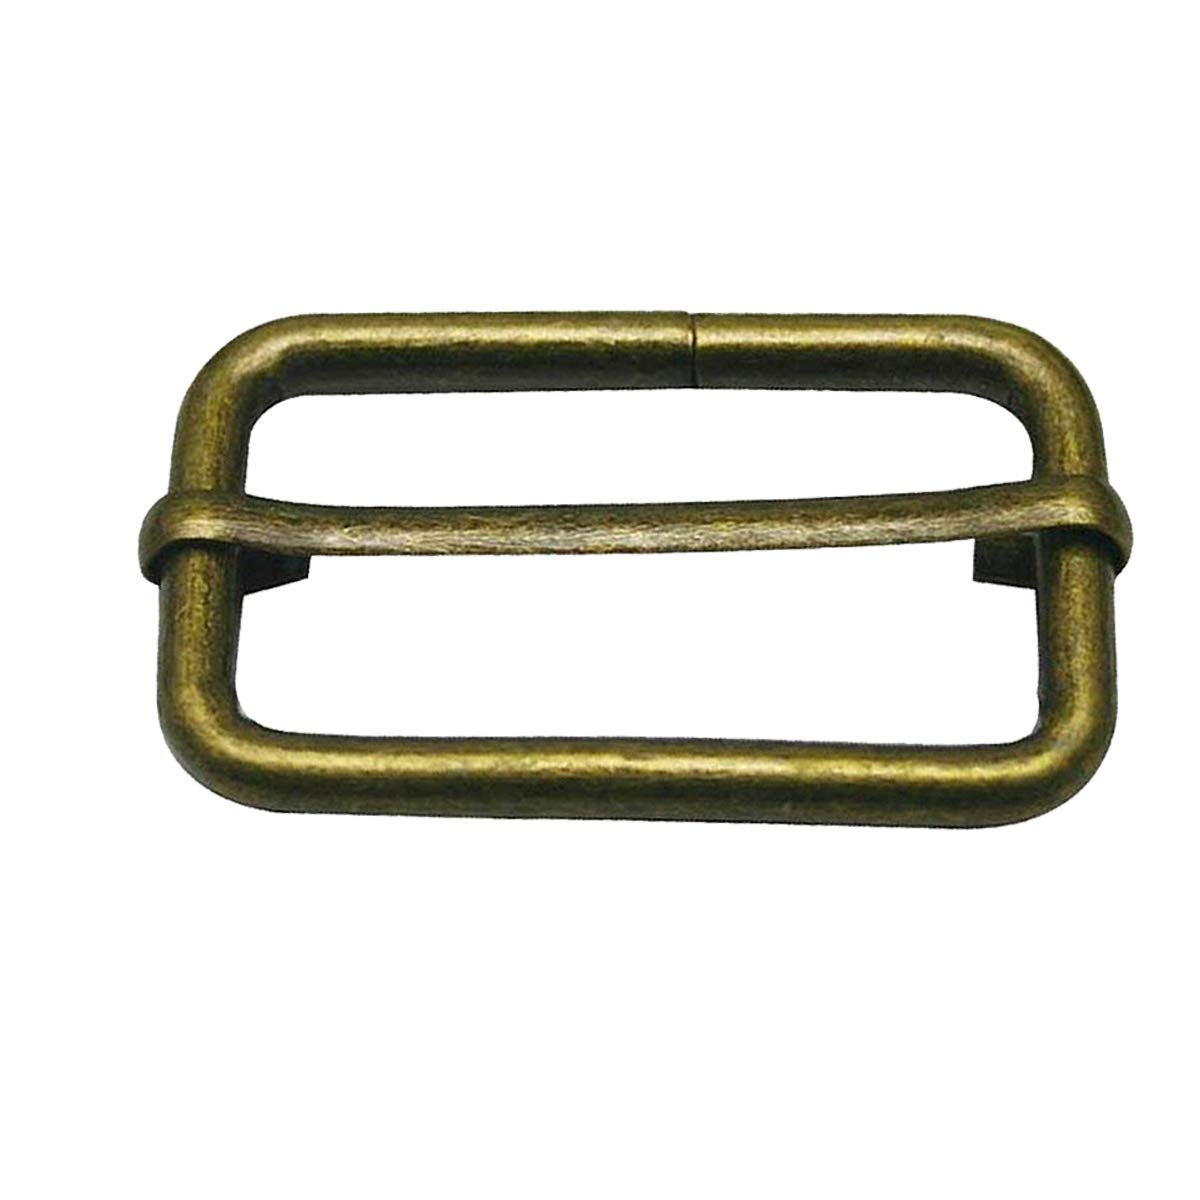 Trimming Shop 38mm Triglide Gold Slider Buckle for Webbing Straps, Backpack, Fasteners Strap, Pet Collars and Bag Accessories, Durable, Lightweight, Pack of 2